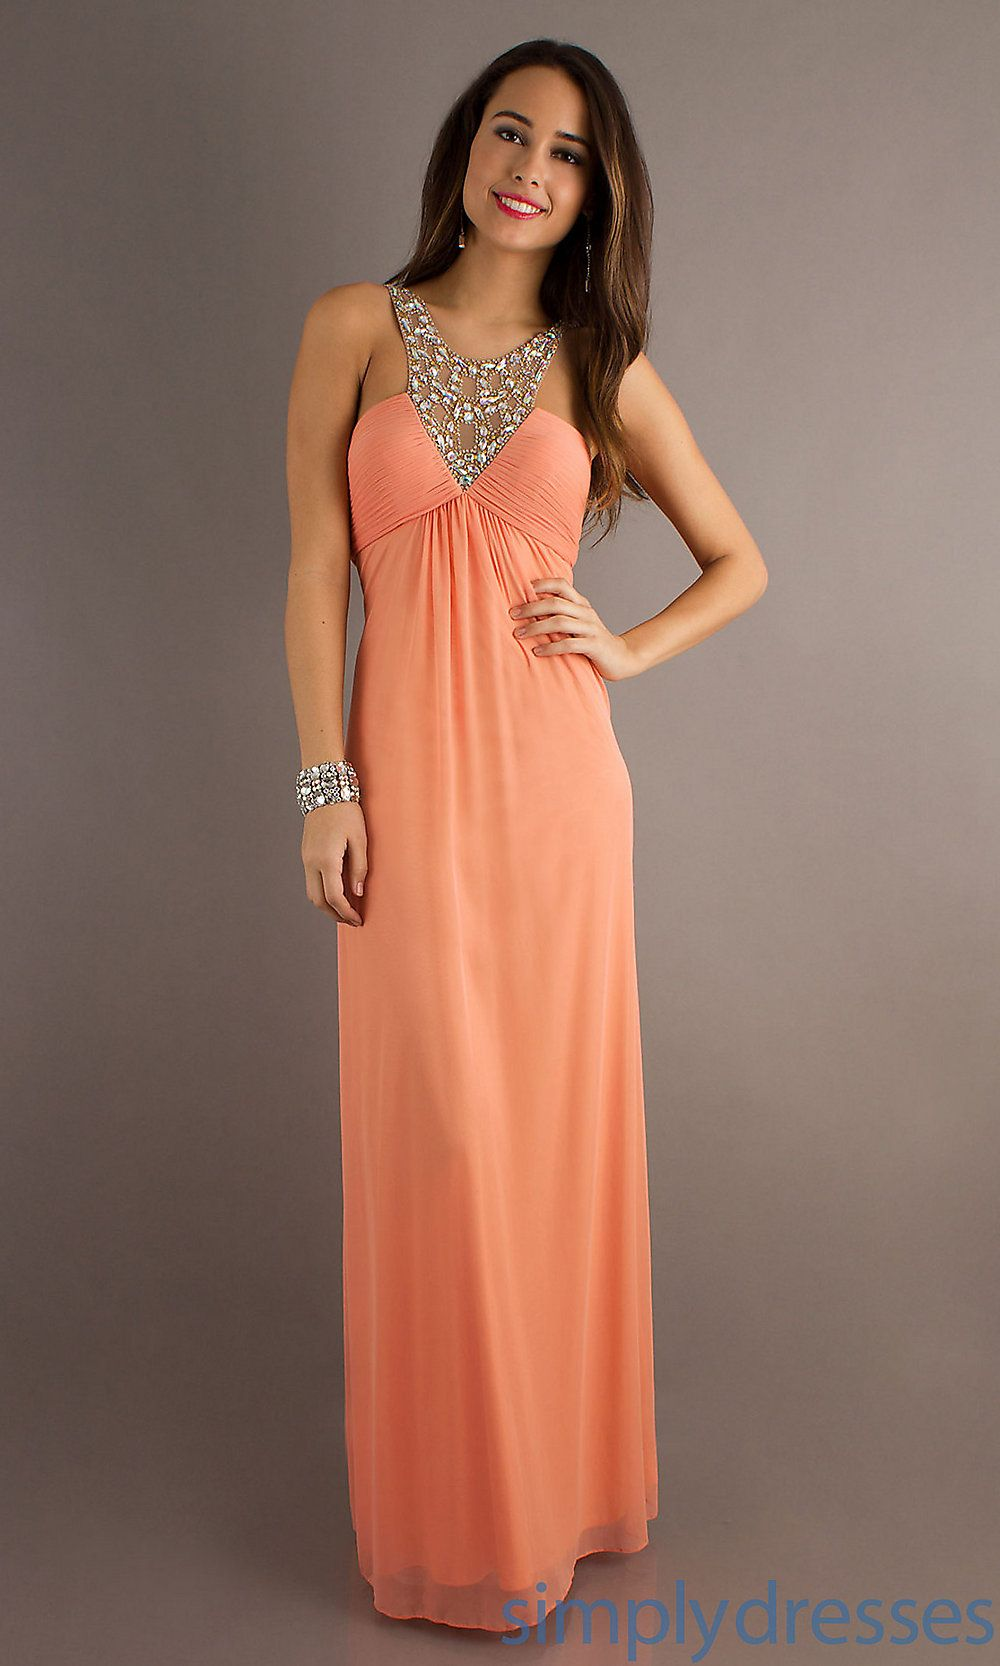 Xscape sleeveless prom gowns elegant long dress simply dresses